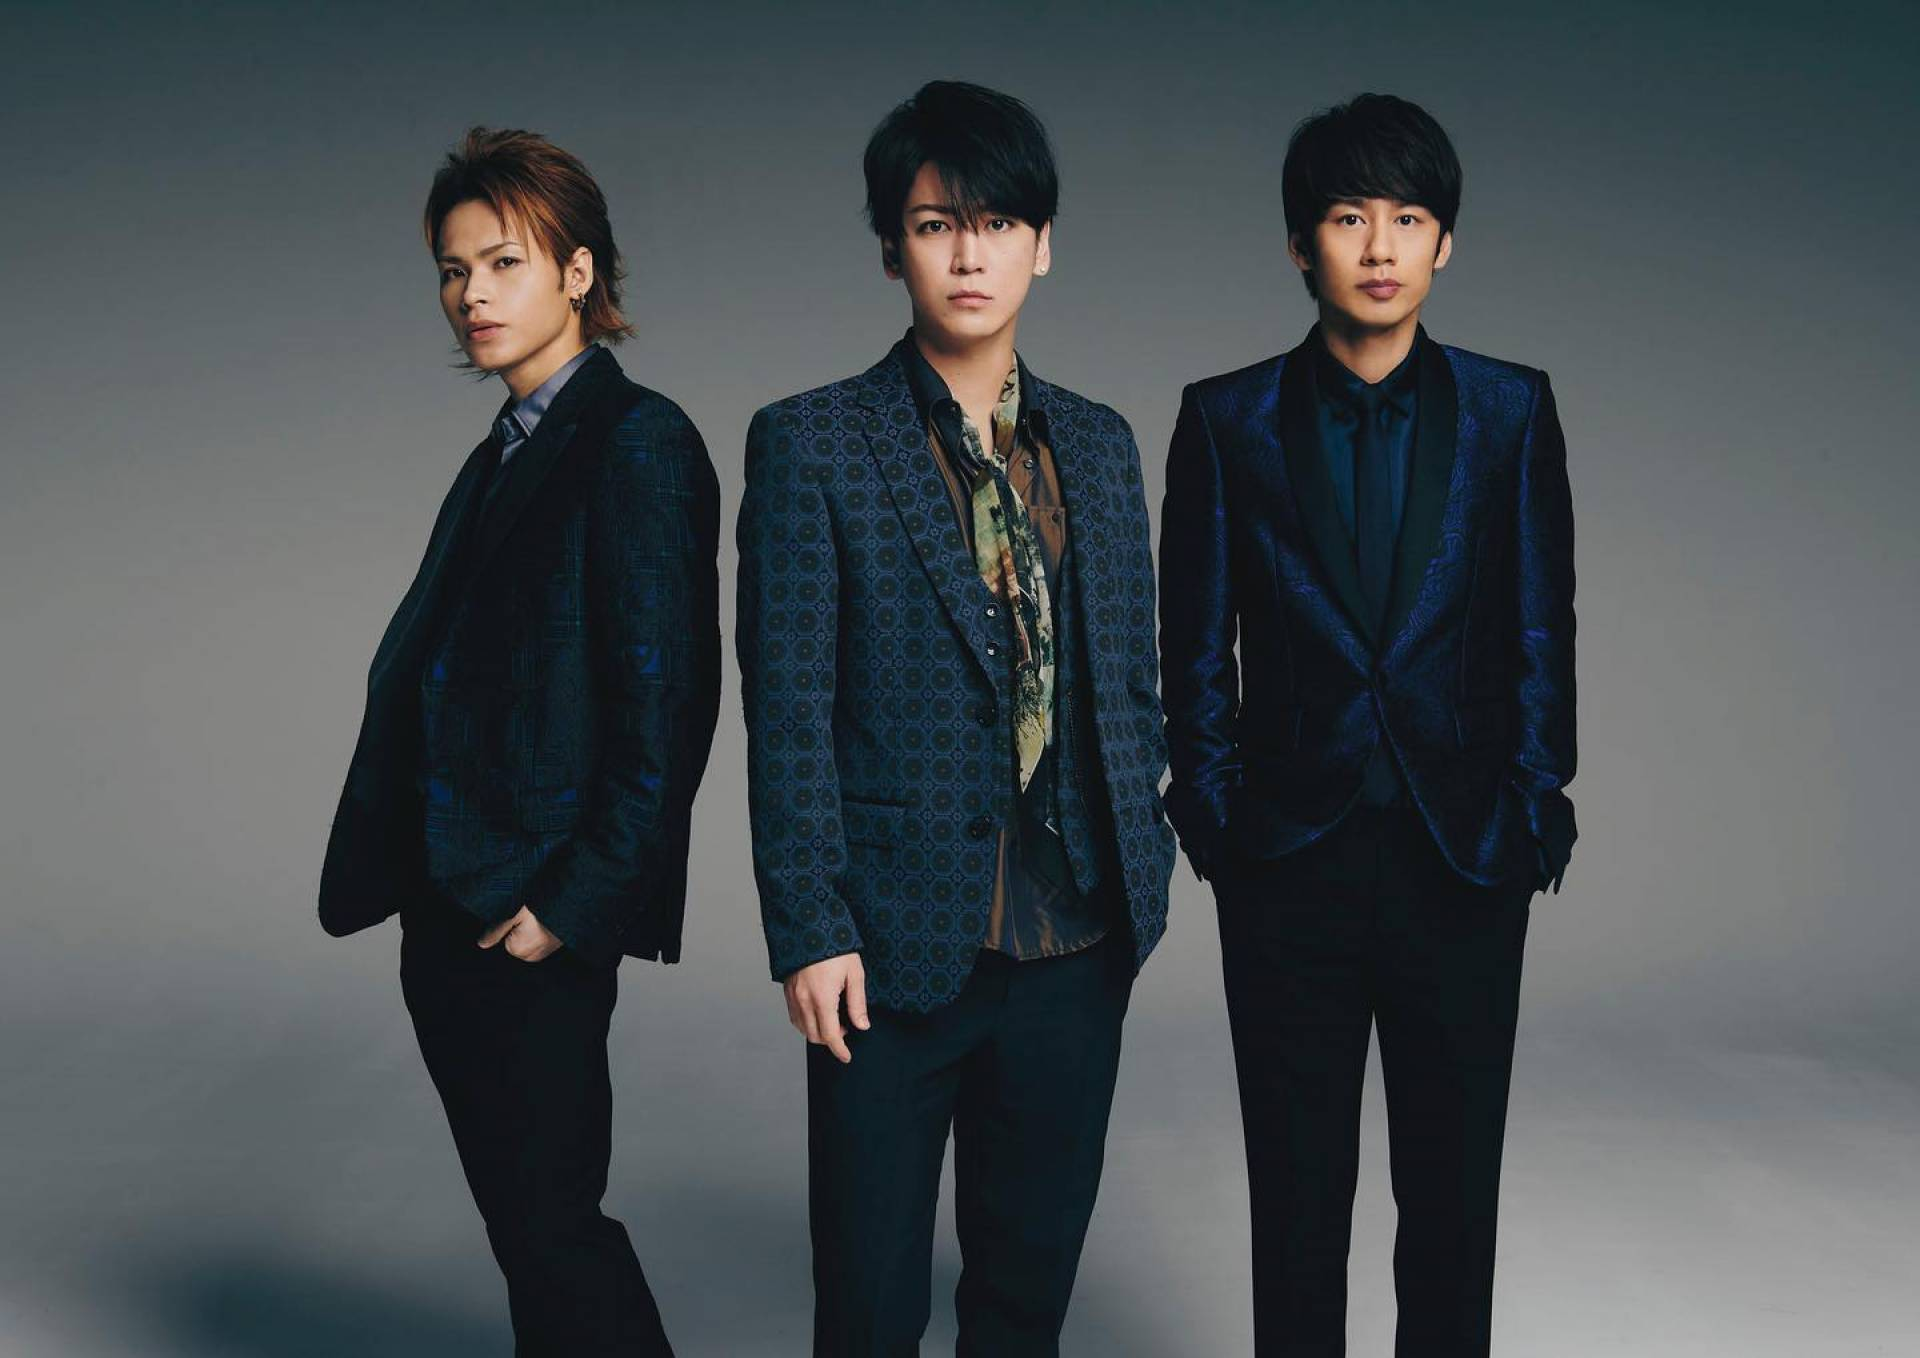 KAT-TUN will release their first new single in three years on March 10th.